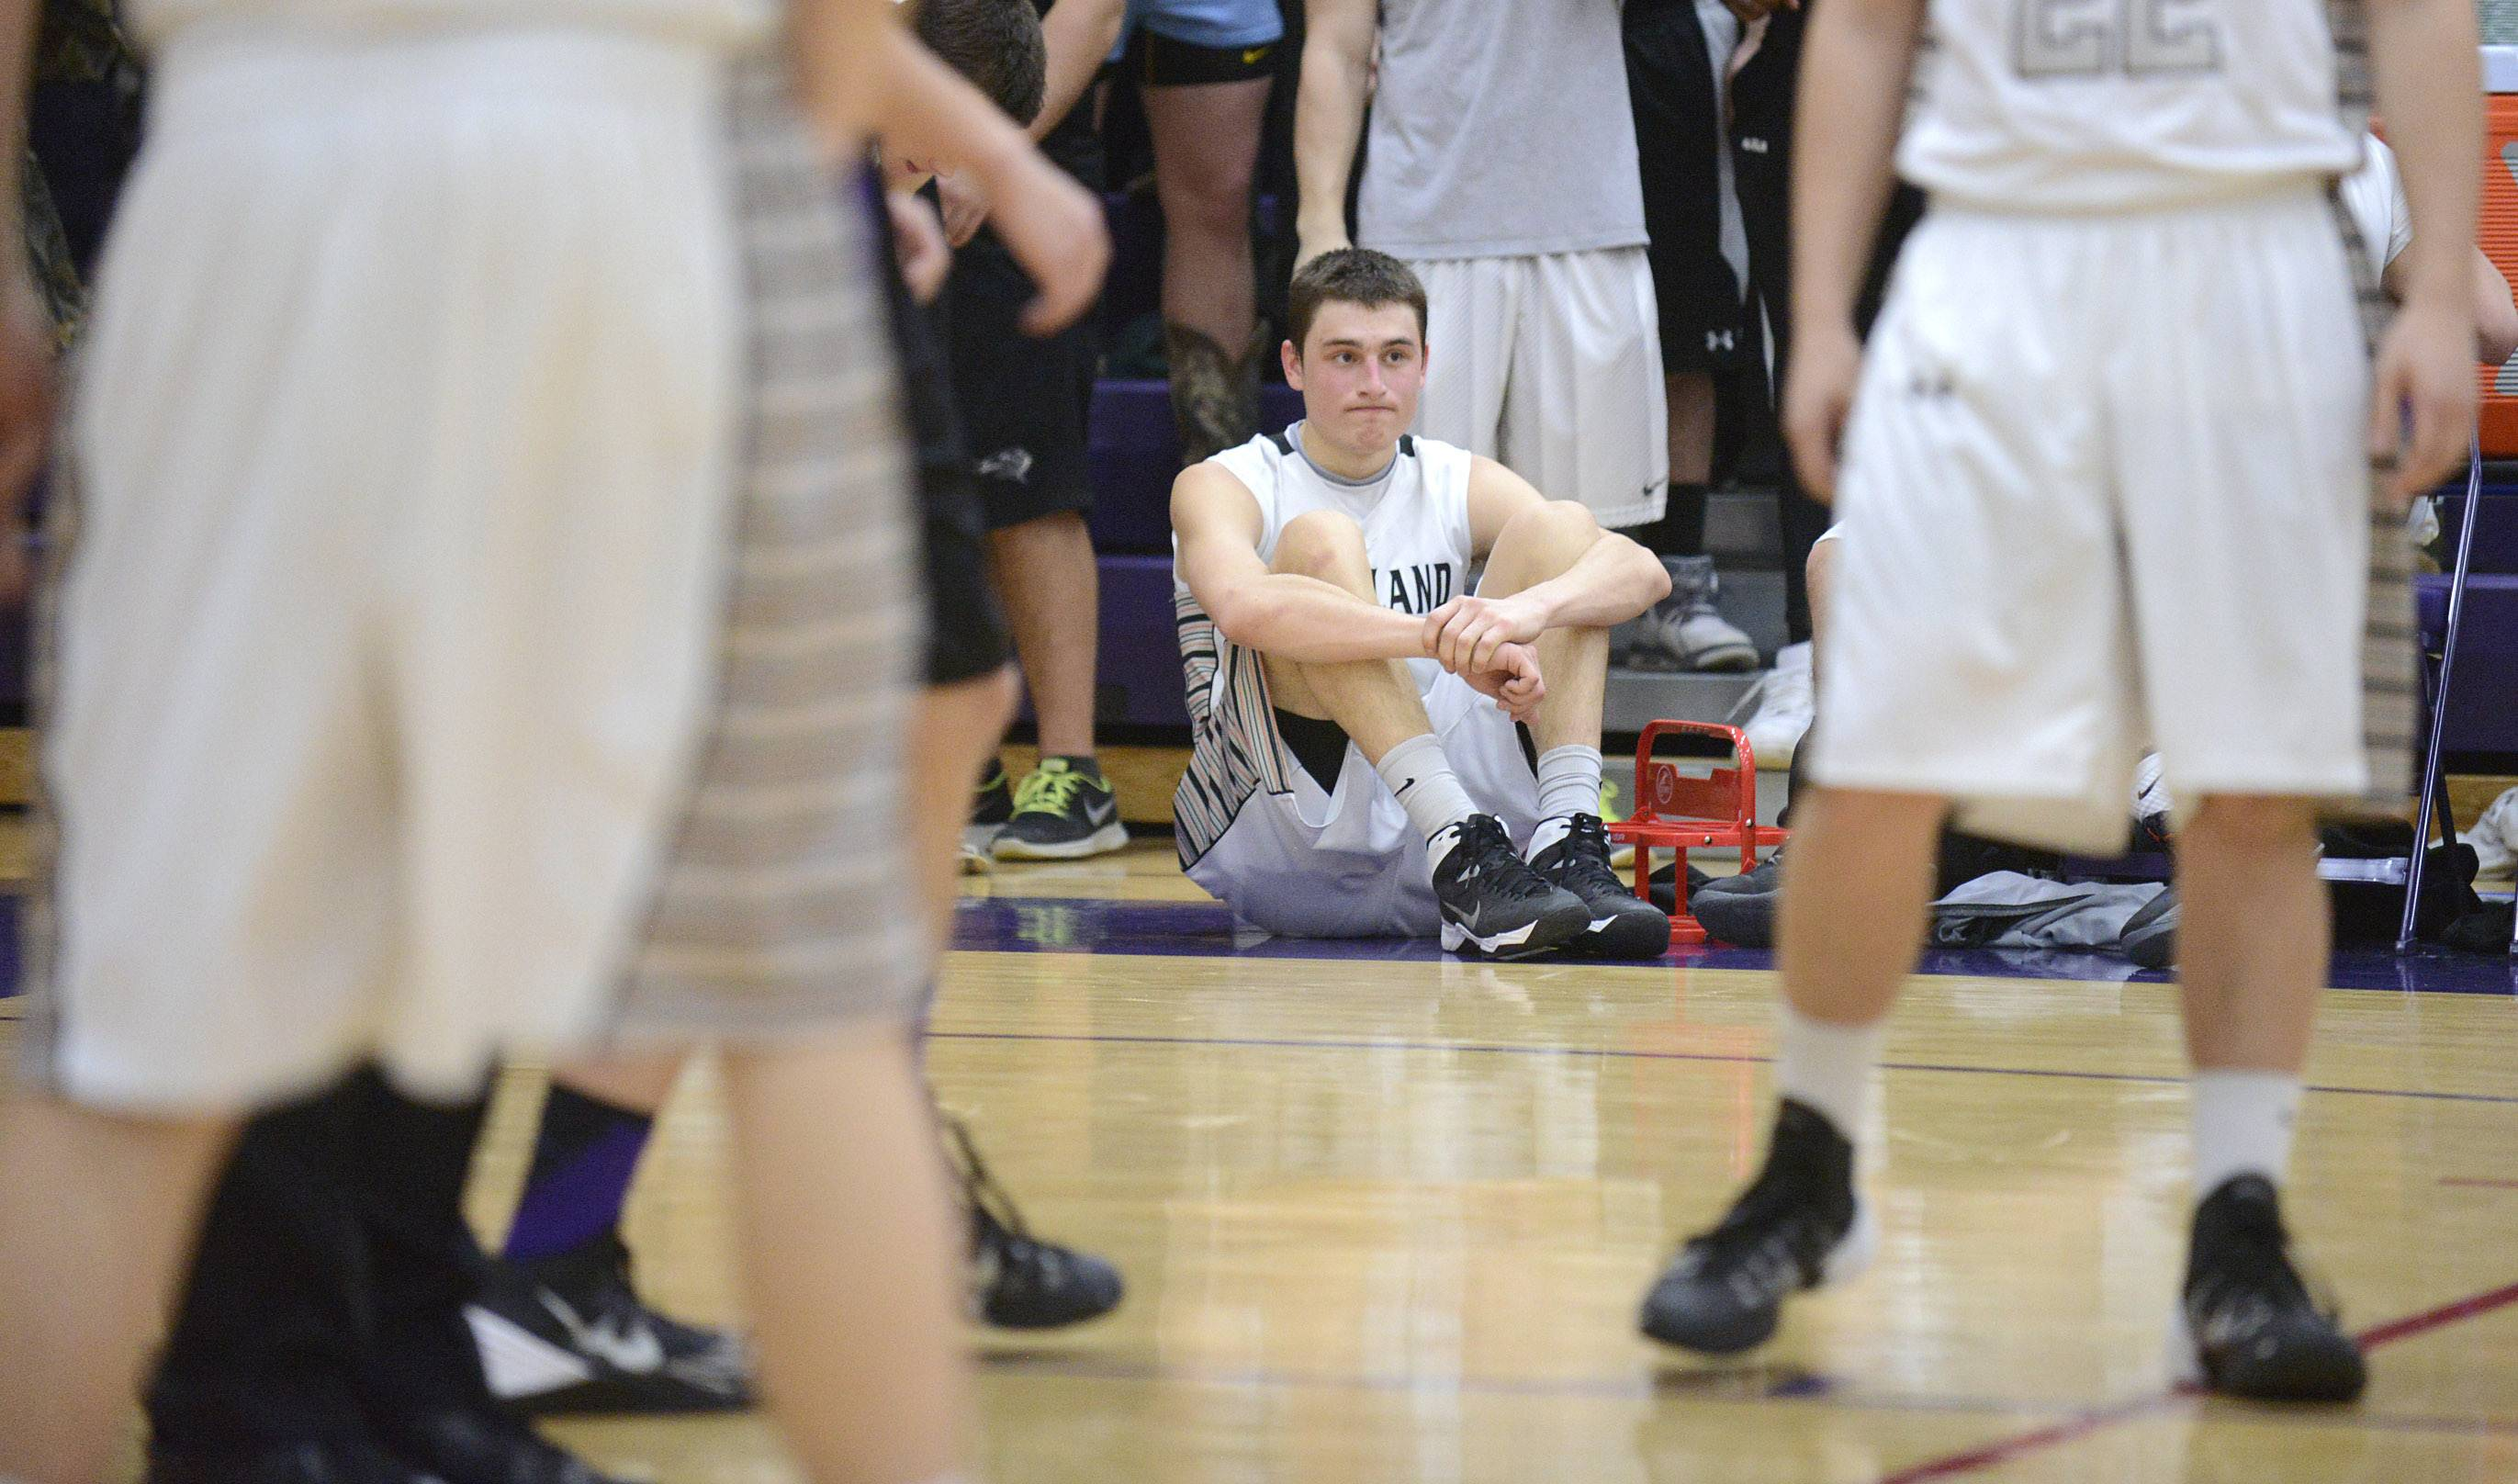 Kaneland's John Pruett sits at the end of the bench watching the final seconds of the Knights' Class 3A sectional loss to Rockford Lutheran at Hampshire HIgh School on Tuesday, March 11.